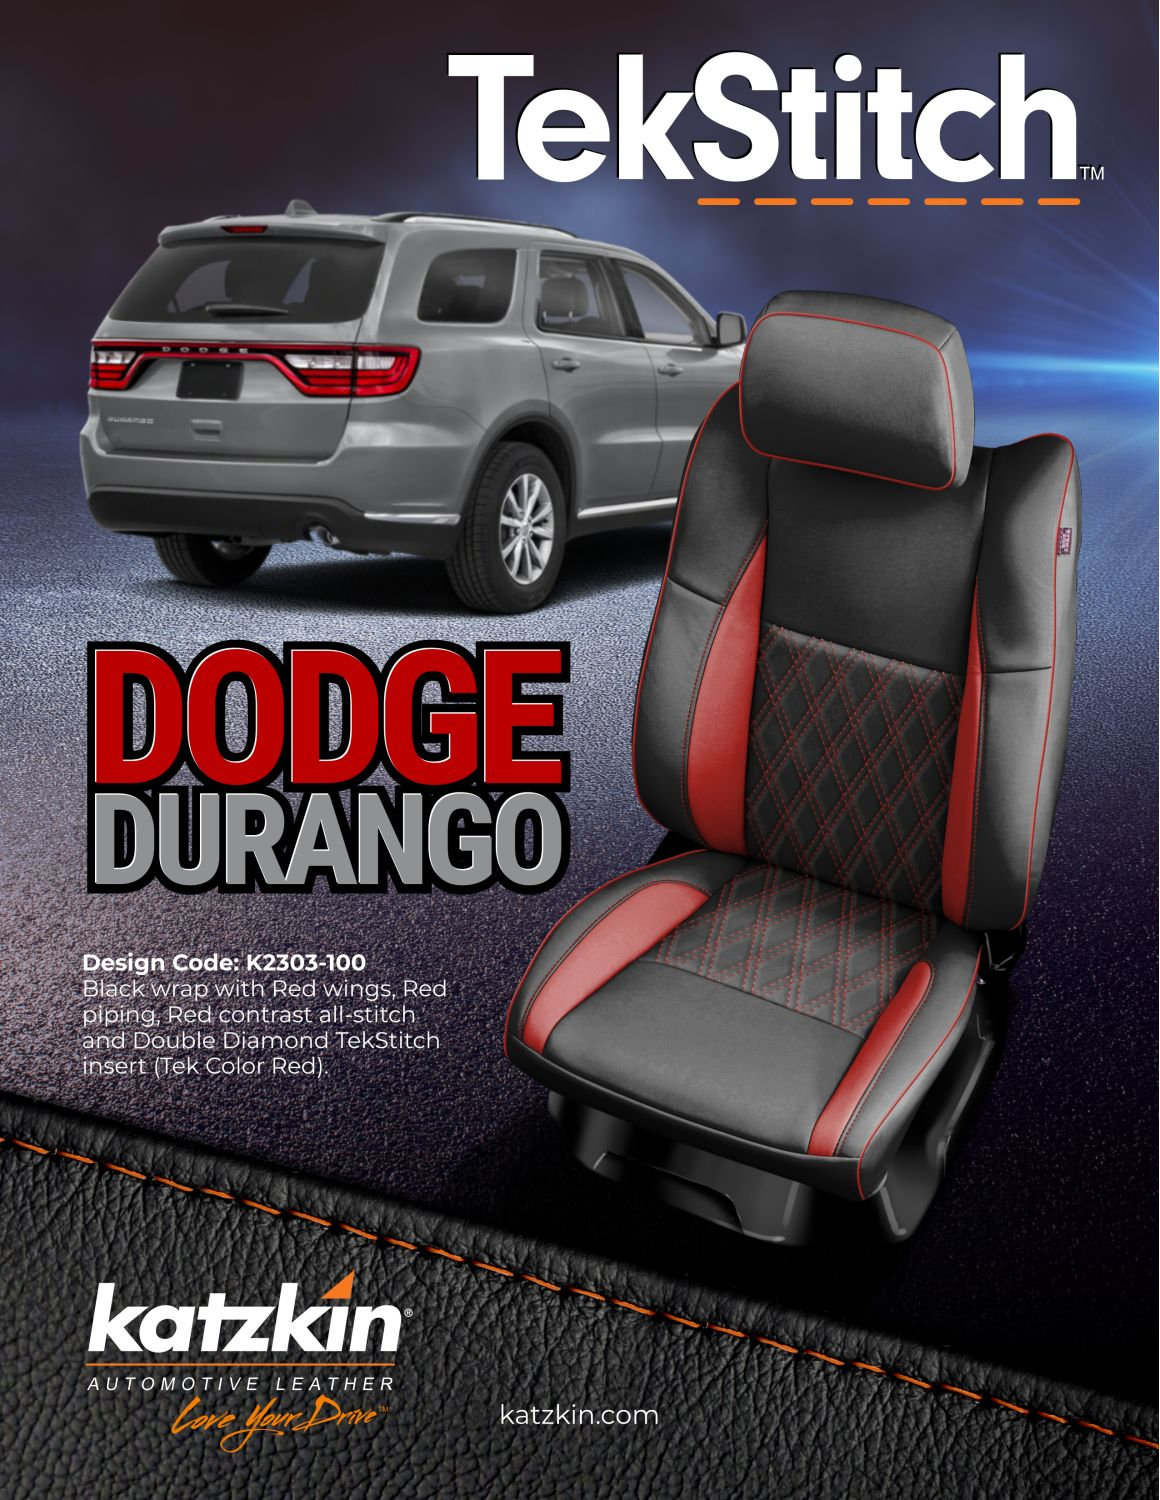 DODGE DURANGO TEKSTITCH